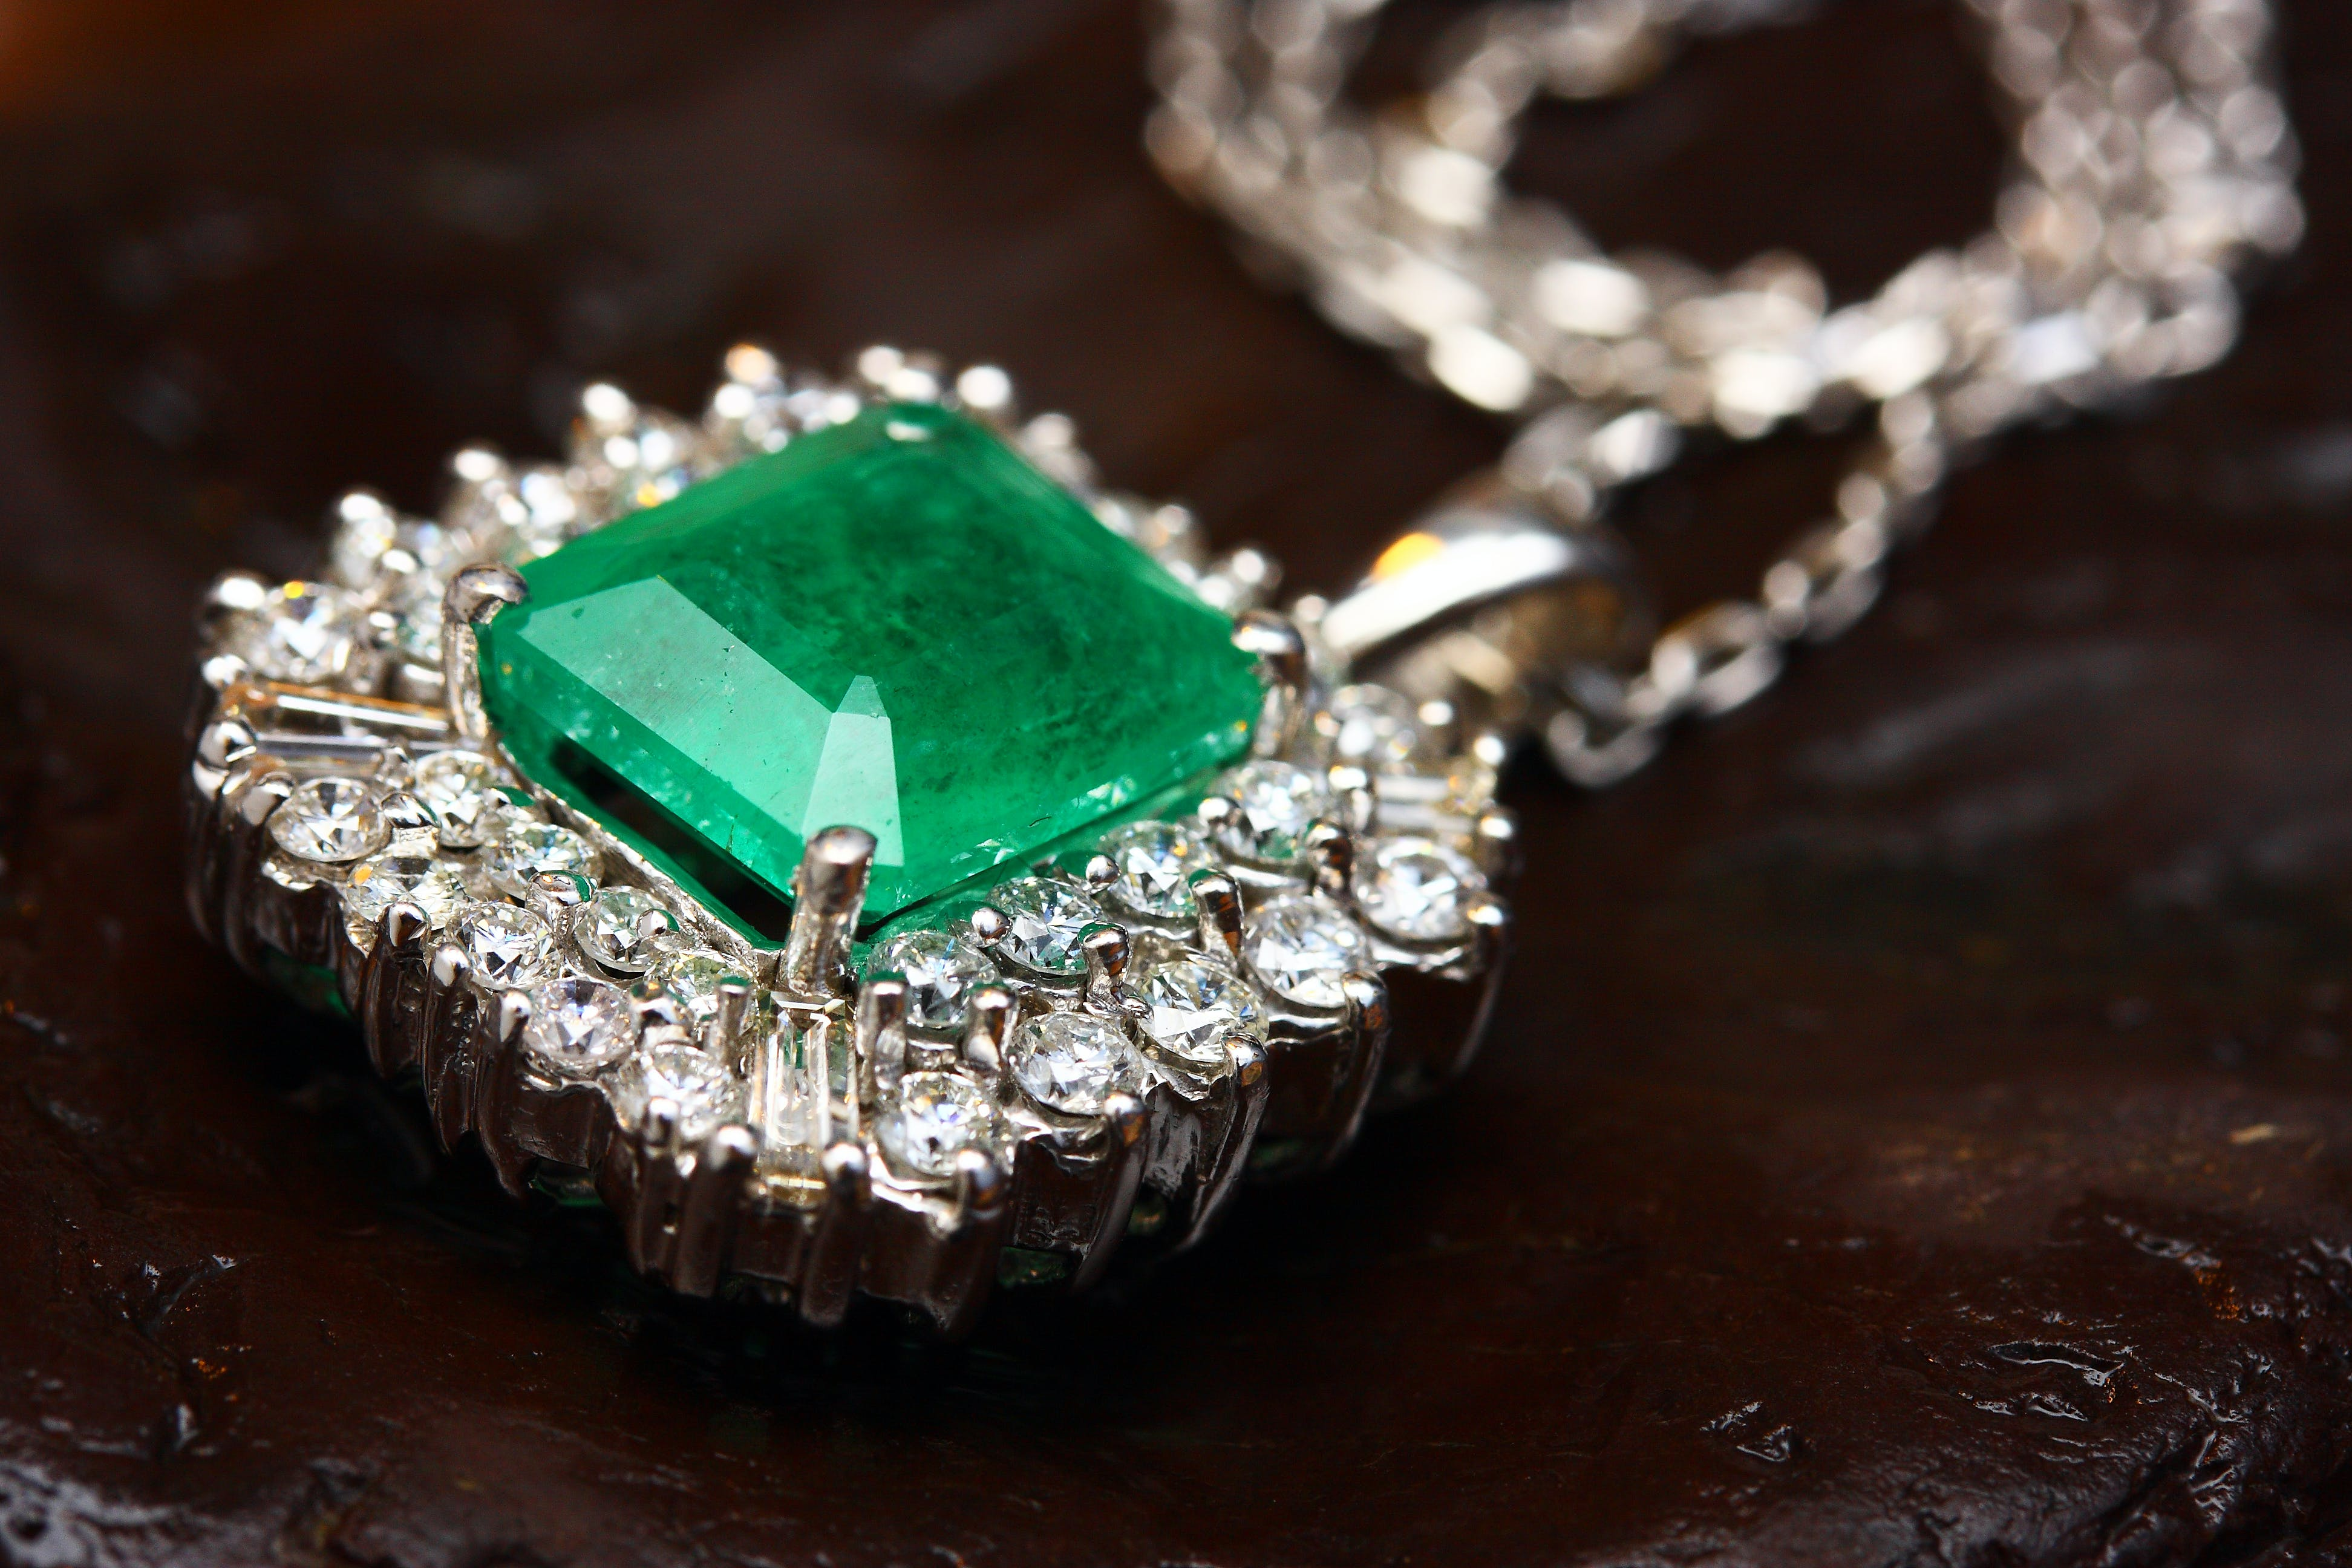 Silver-colored Pendant With Green Gemstone